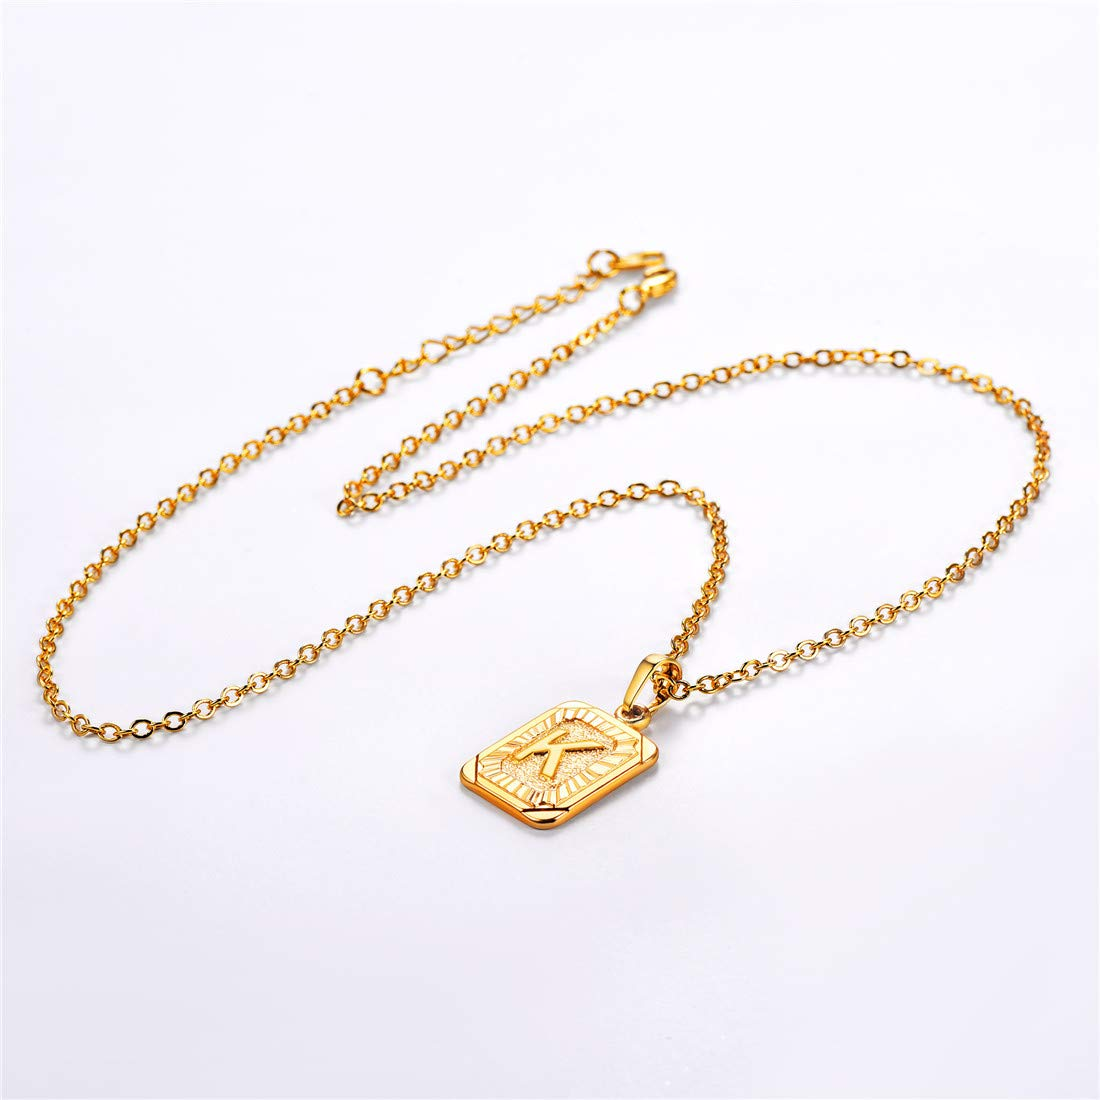 18K Gold Plated Initial Letter Pendant Necklace